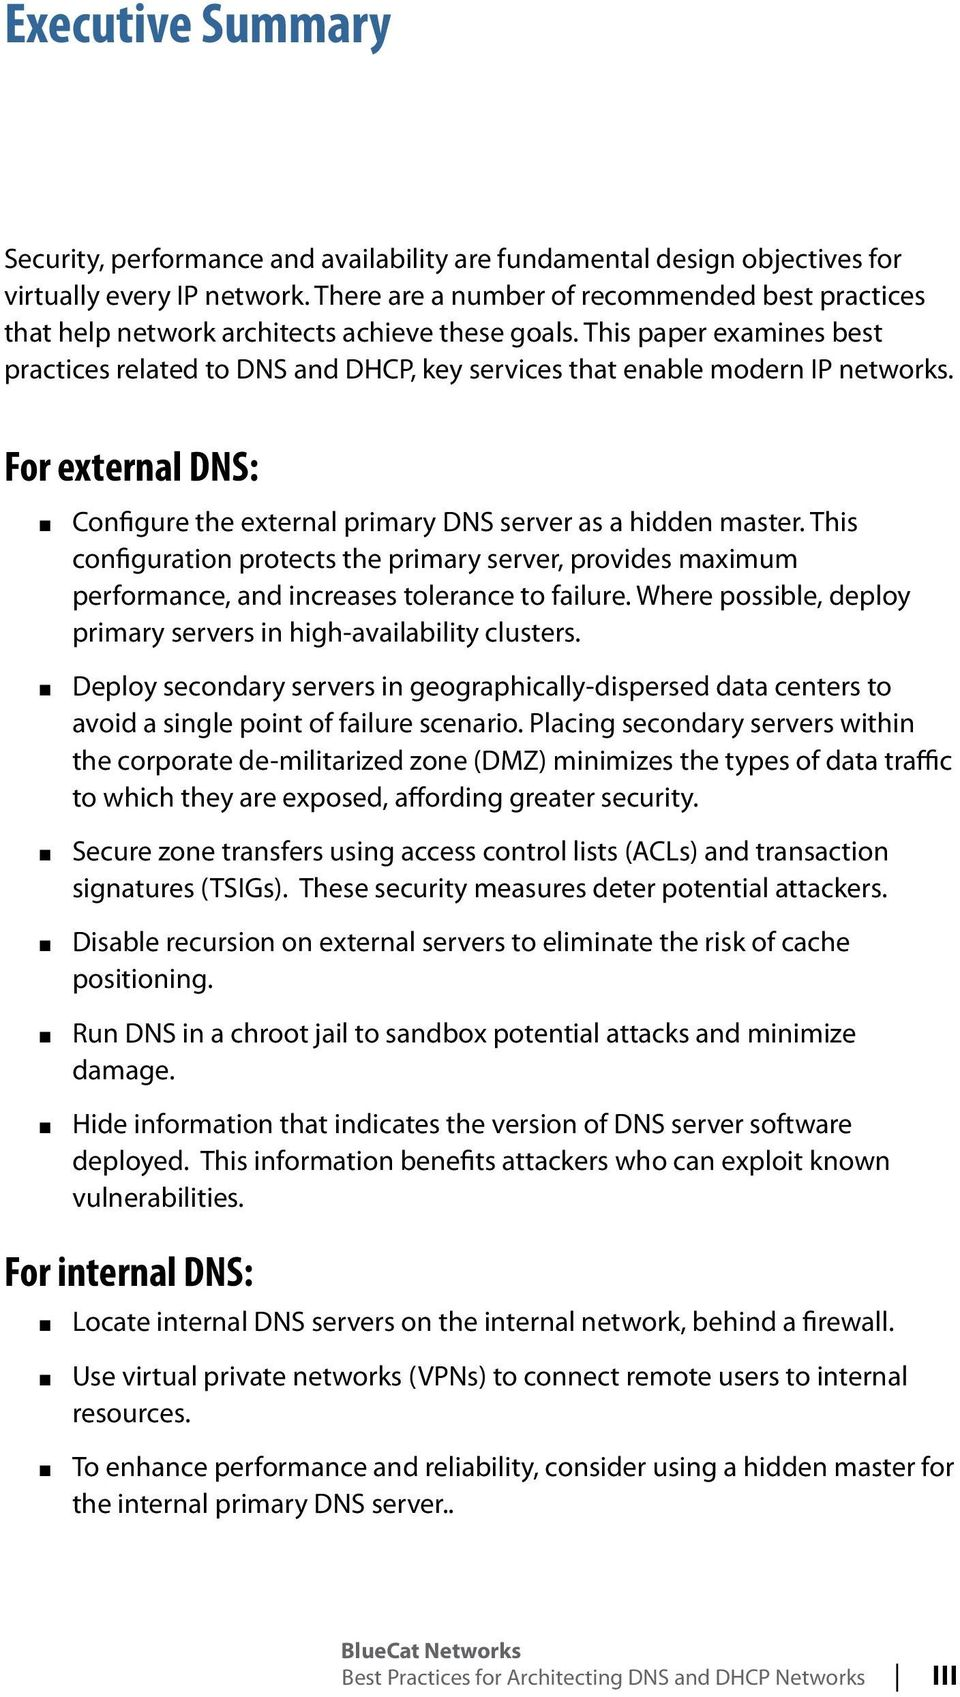 Best Practices For Architecting DNS and DHCP Networks  No IP  No